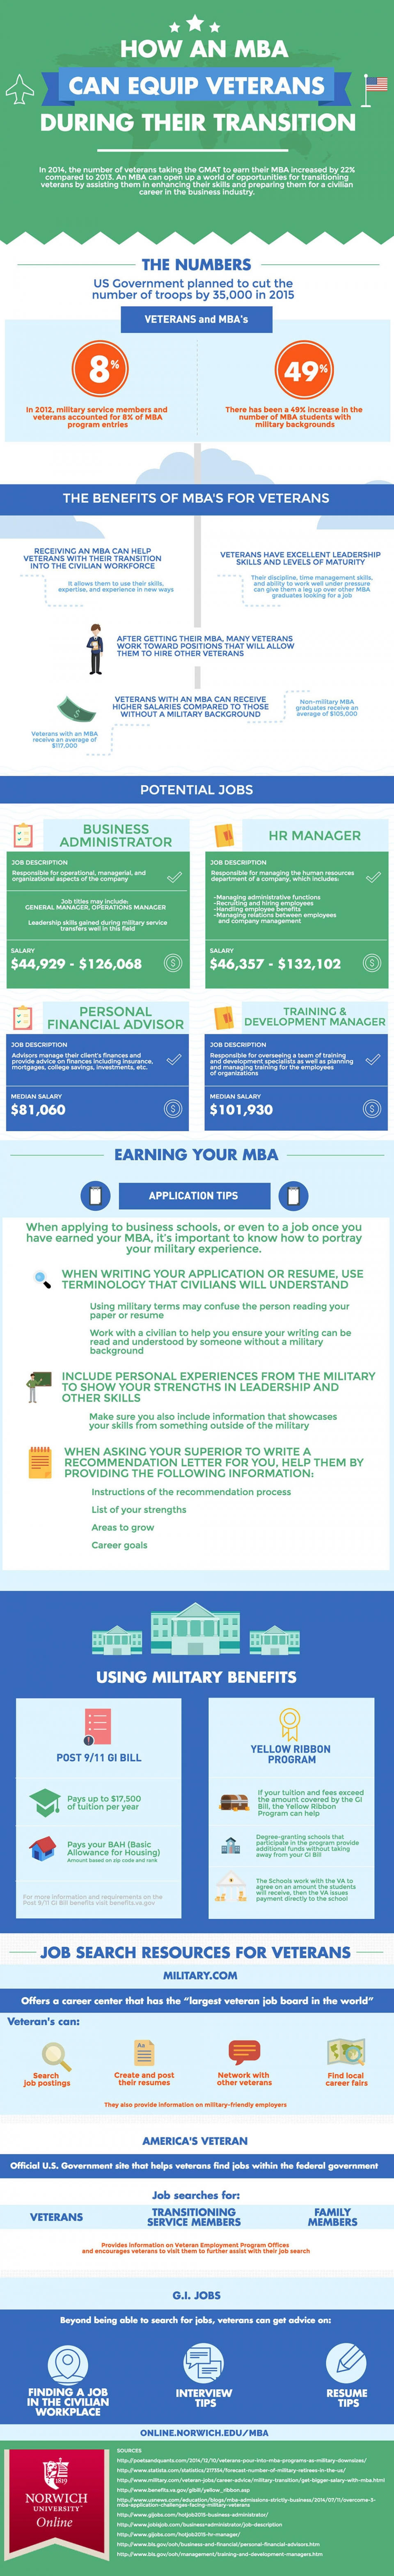 mba for veterans infographic image